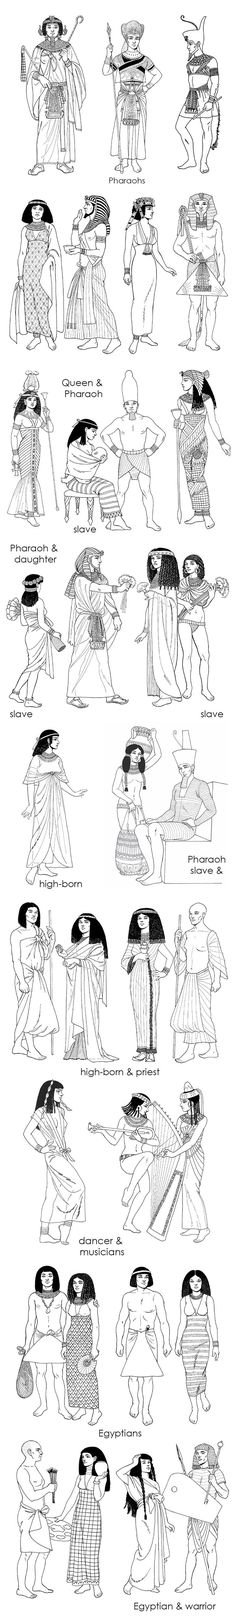 Pharaoh, queen, slave dress cides in Ancient Egypt Egyptian Mythology, Ancient Egyptian Art, Ancient History, Ancient Egypt Clothing, Ancient Egypt Fashion, Egyptian Pharaohs, Ancient Aliens, Clothes Draw, Egyptian Fashion